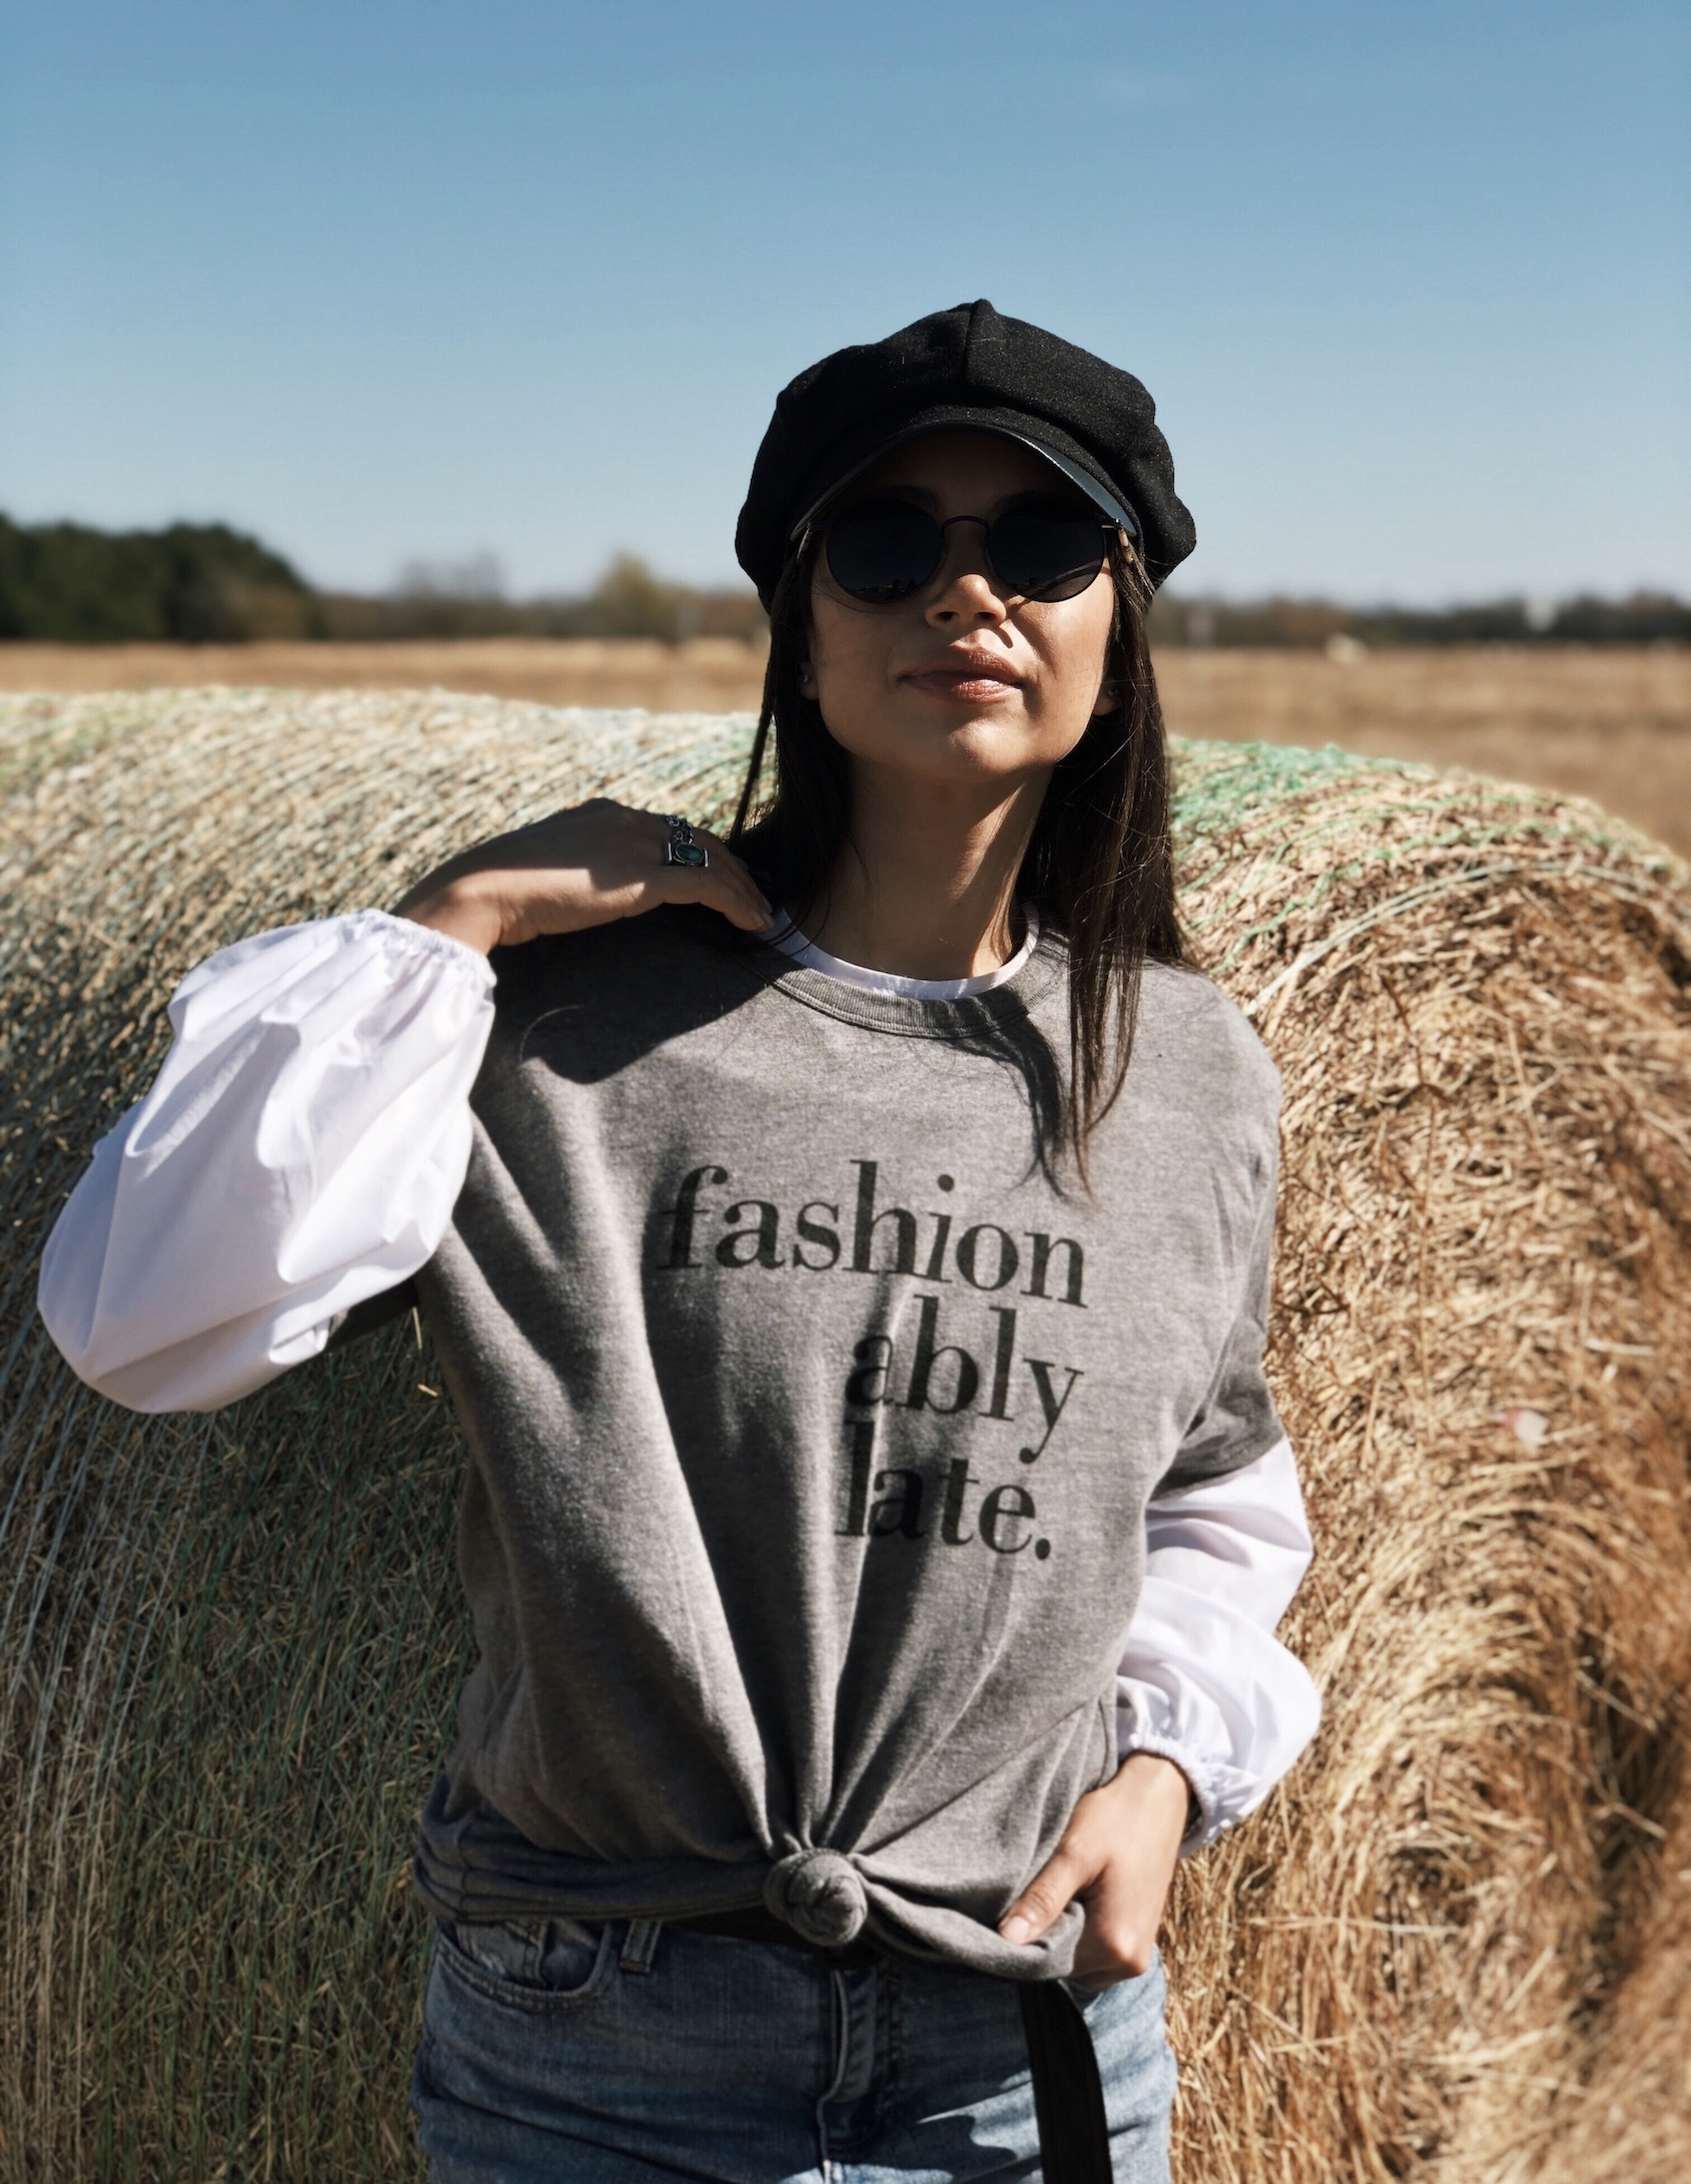 Layered t-shirt outfit - A Week Of Cruelty-Free Outfits & Vegan Beauty With Jessica Salazar From All There August on The Good Trade